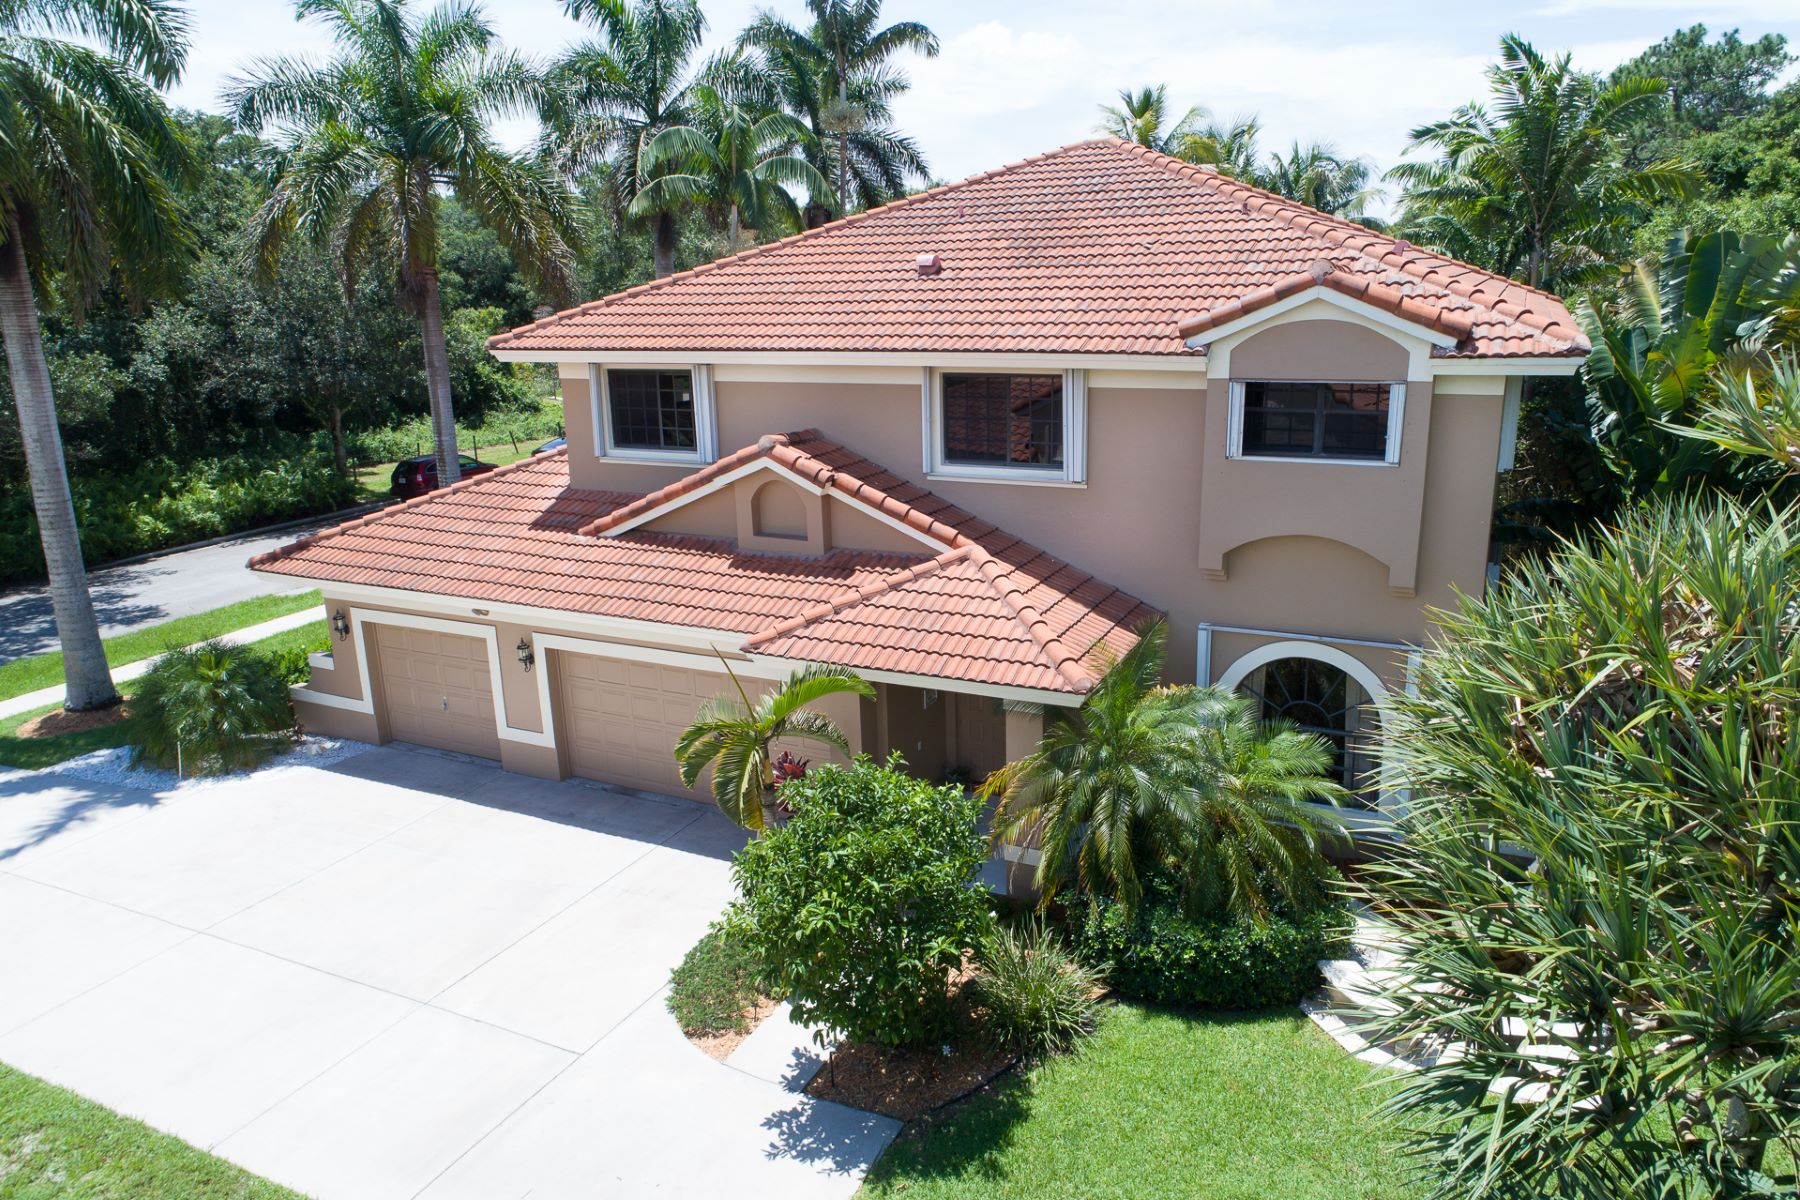 Single Family Home for Sale at 2991 Hidden Hollow Ln Davie, Florida 33328 United States